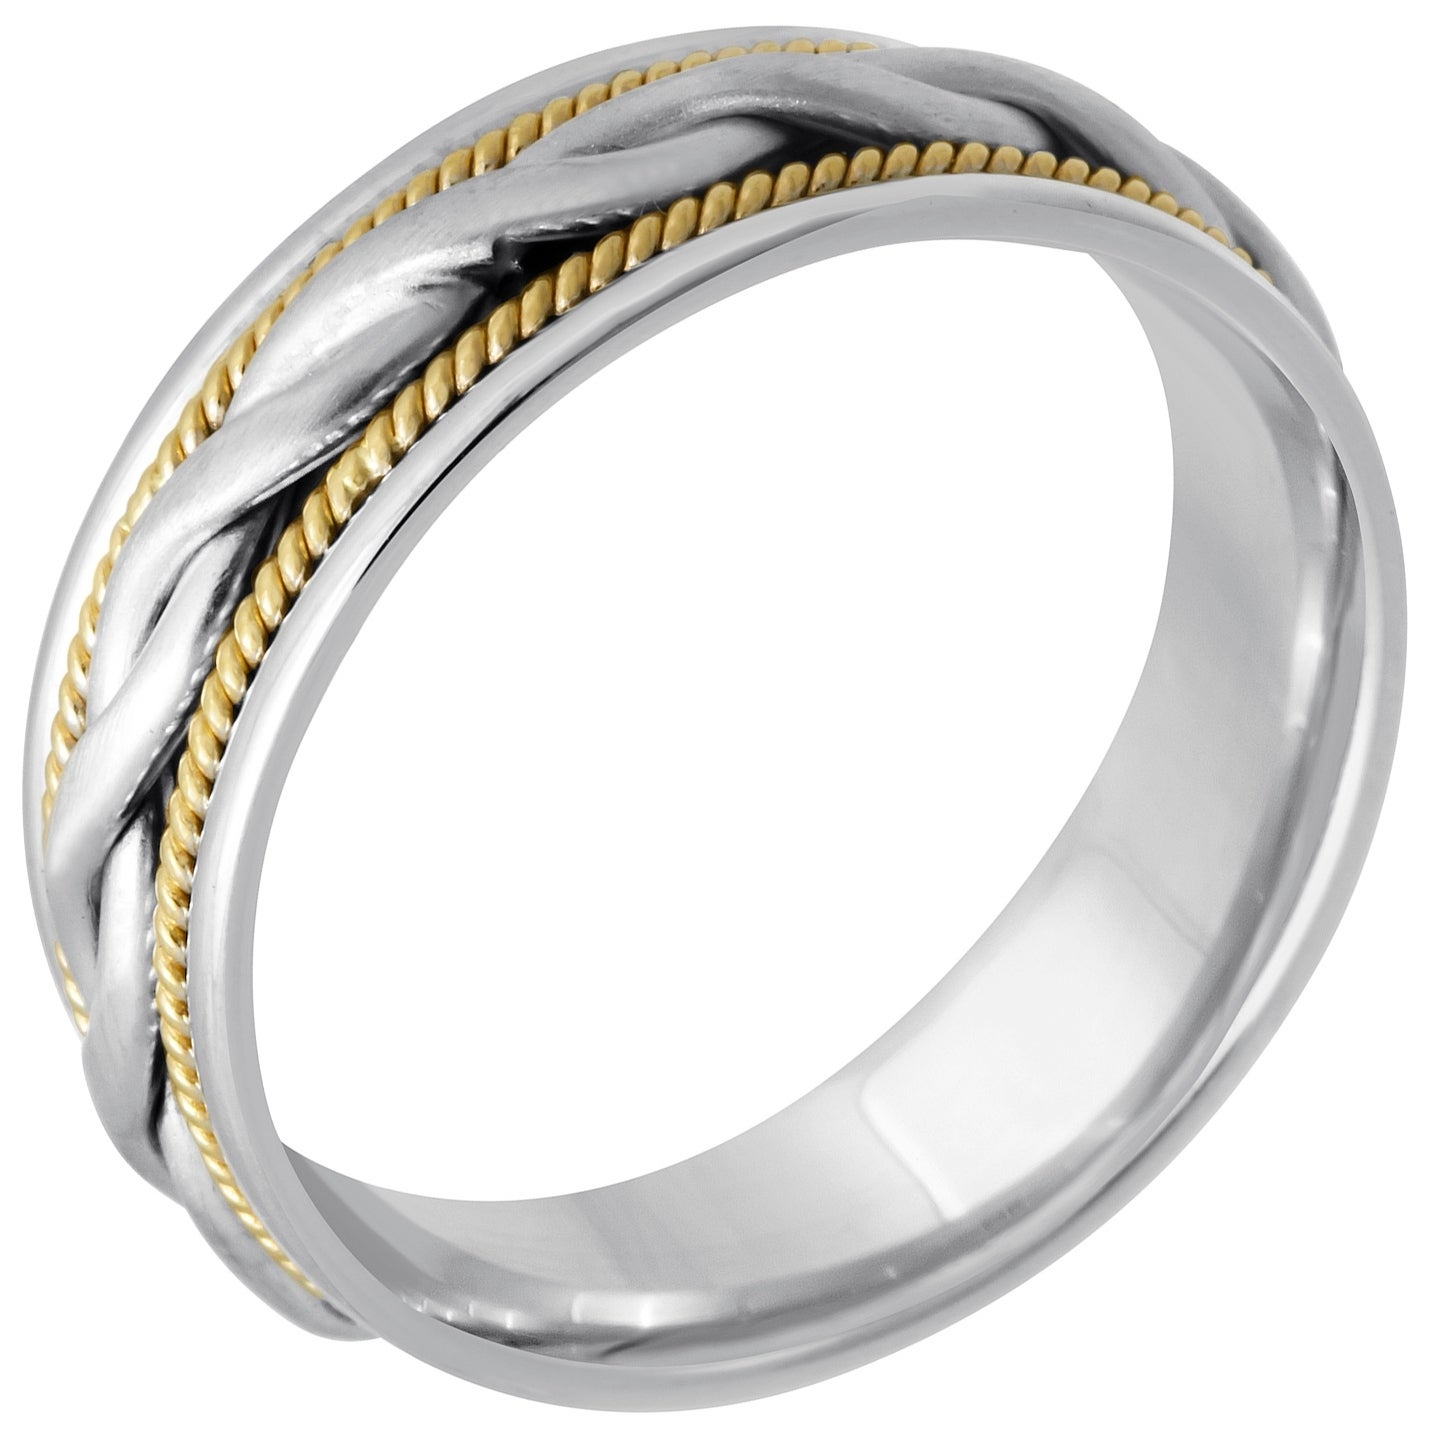 Shop 14k Twotone Gold Twist Braid Design Fort Fit Men's Wedding Bands Free Shipping Today Overstock 8236507: Twisted Two Tone Wedding Bands At Websimilar.org